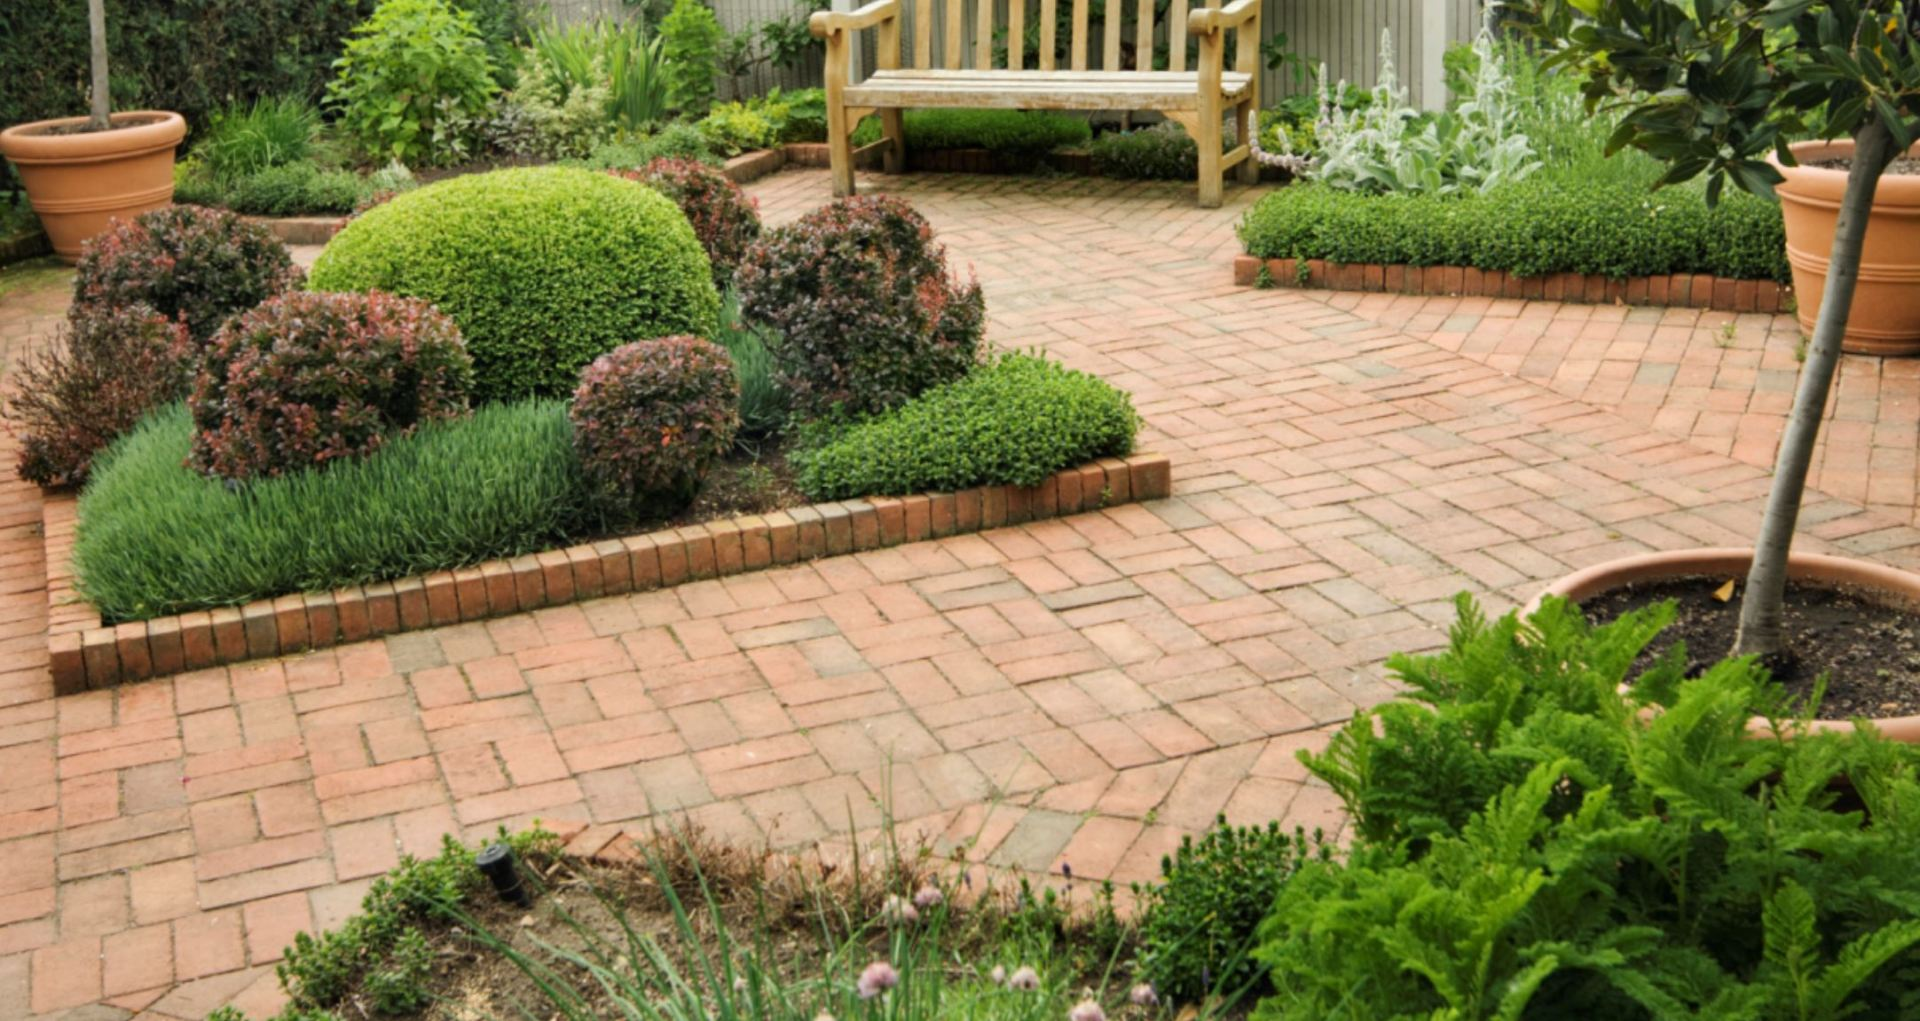 Our Total Solution gives your yard and lawn a better look than all our competitors.